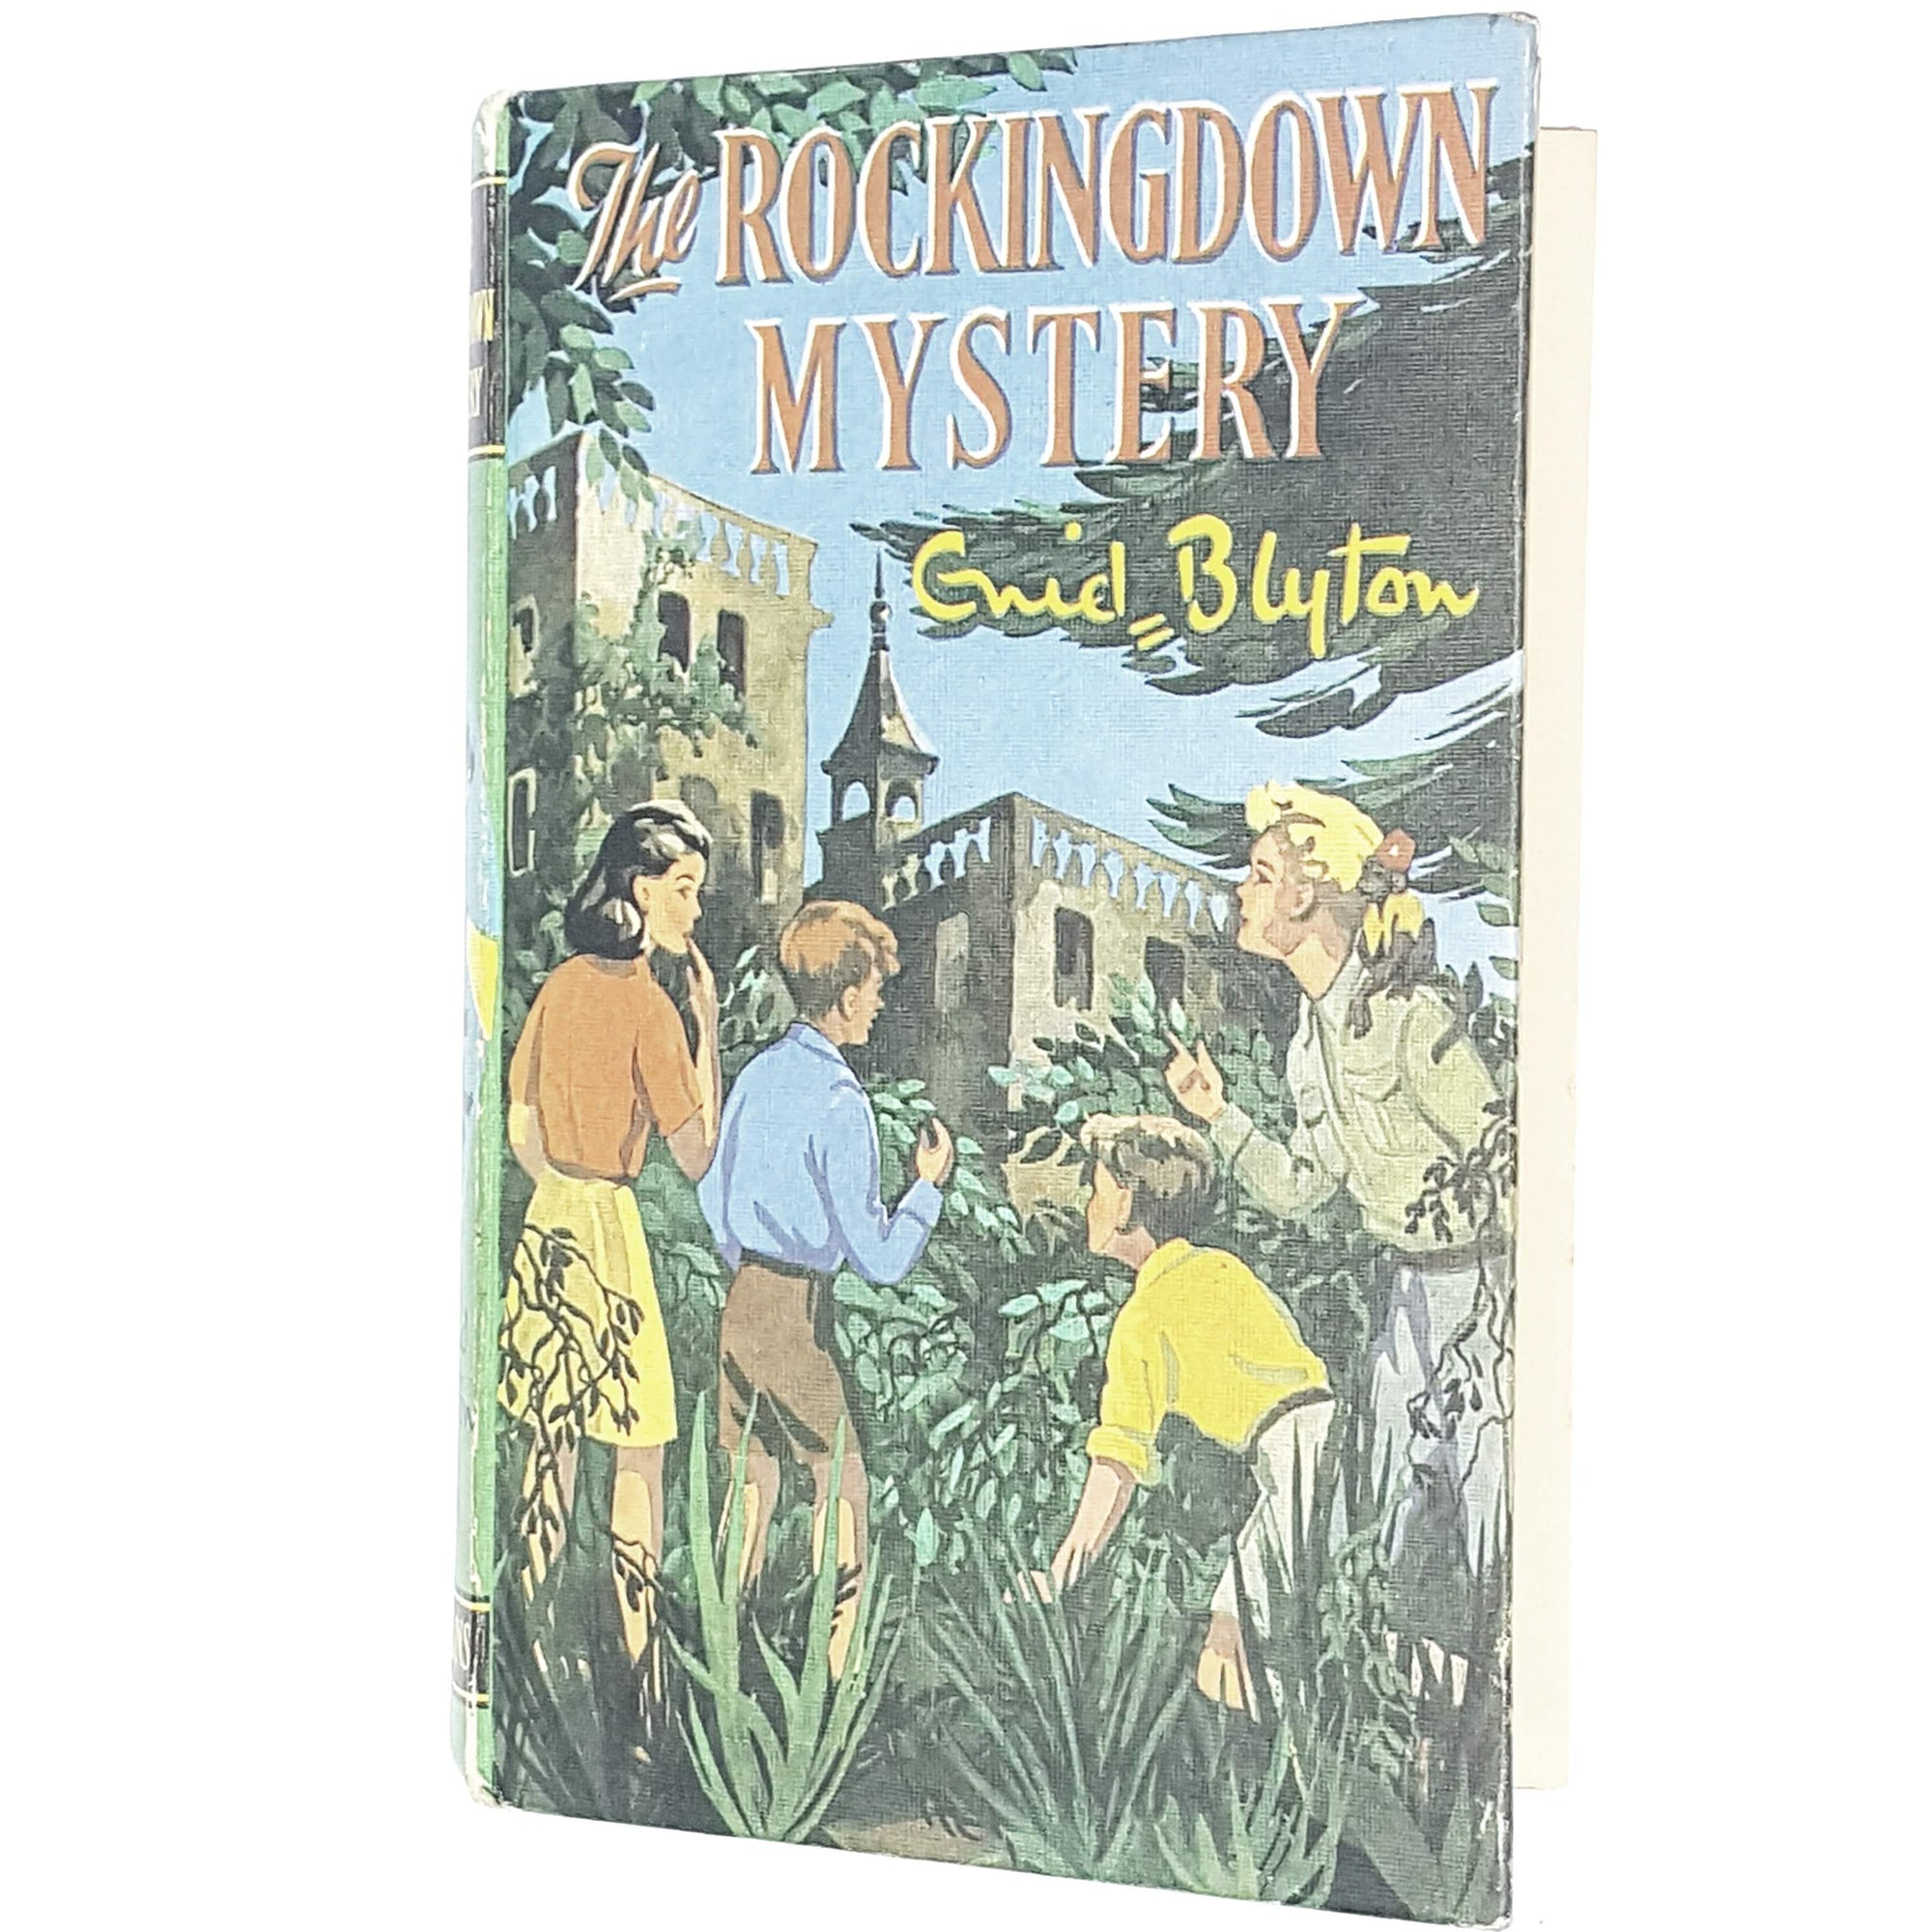 Enid Blyton's The Rockingdown Mystery 1969 - 1970